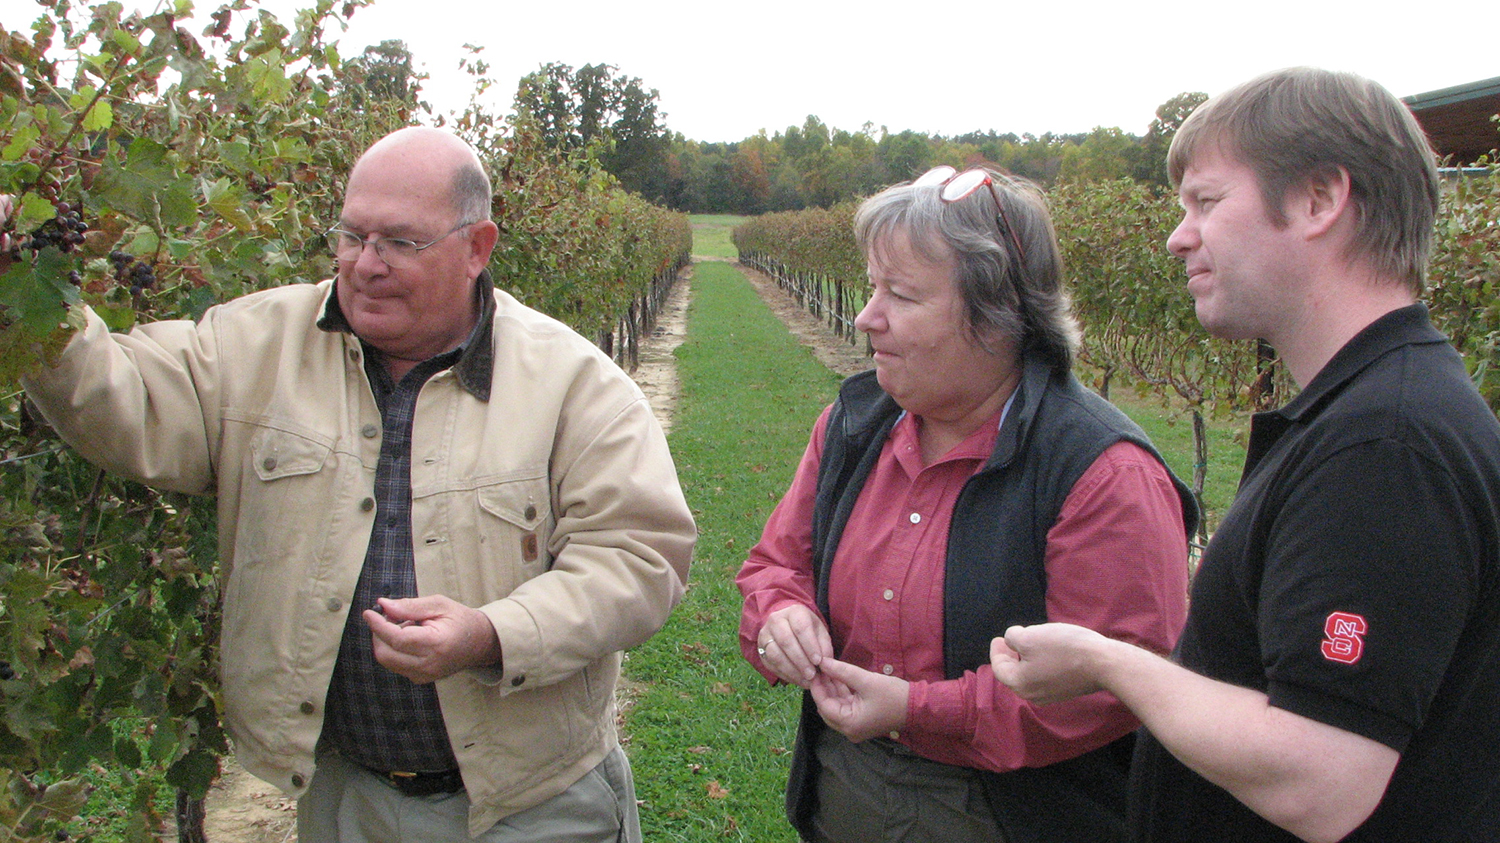 Two men and a woman examining grapes in a vineyard.